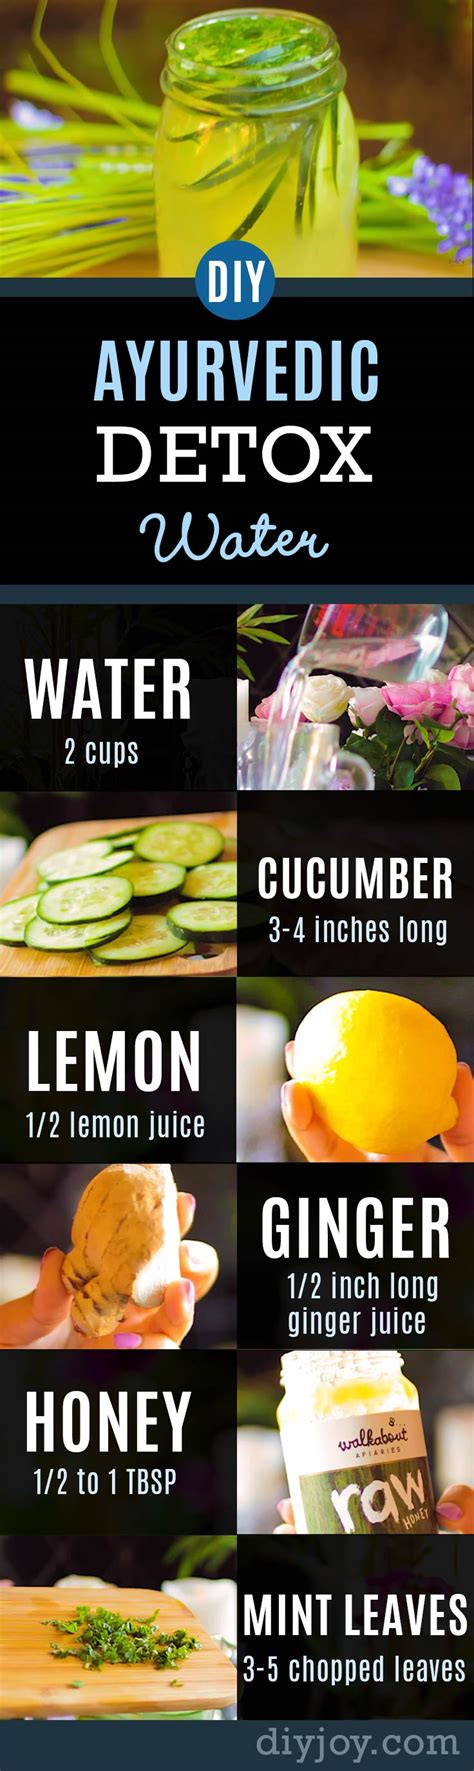 Diy Detox Drinks For Skin by Ayurvedic Detox Water Weight Loss Clear Skin Flat